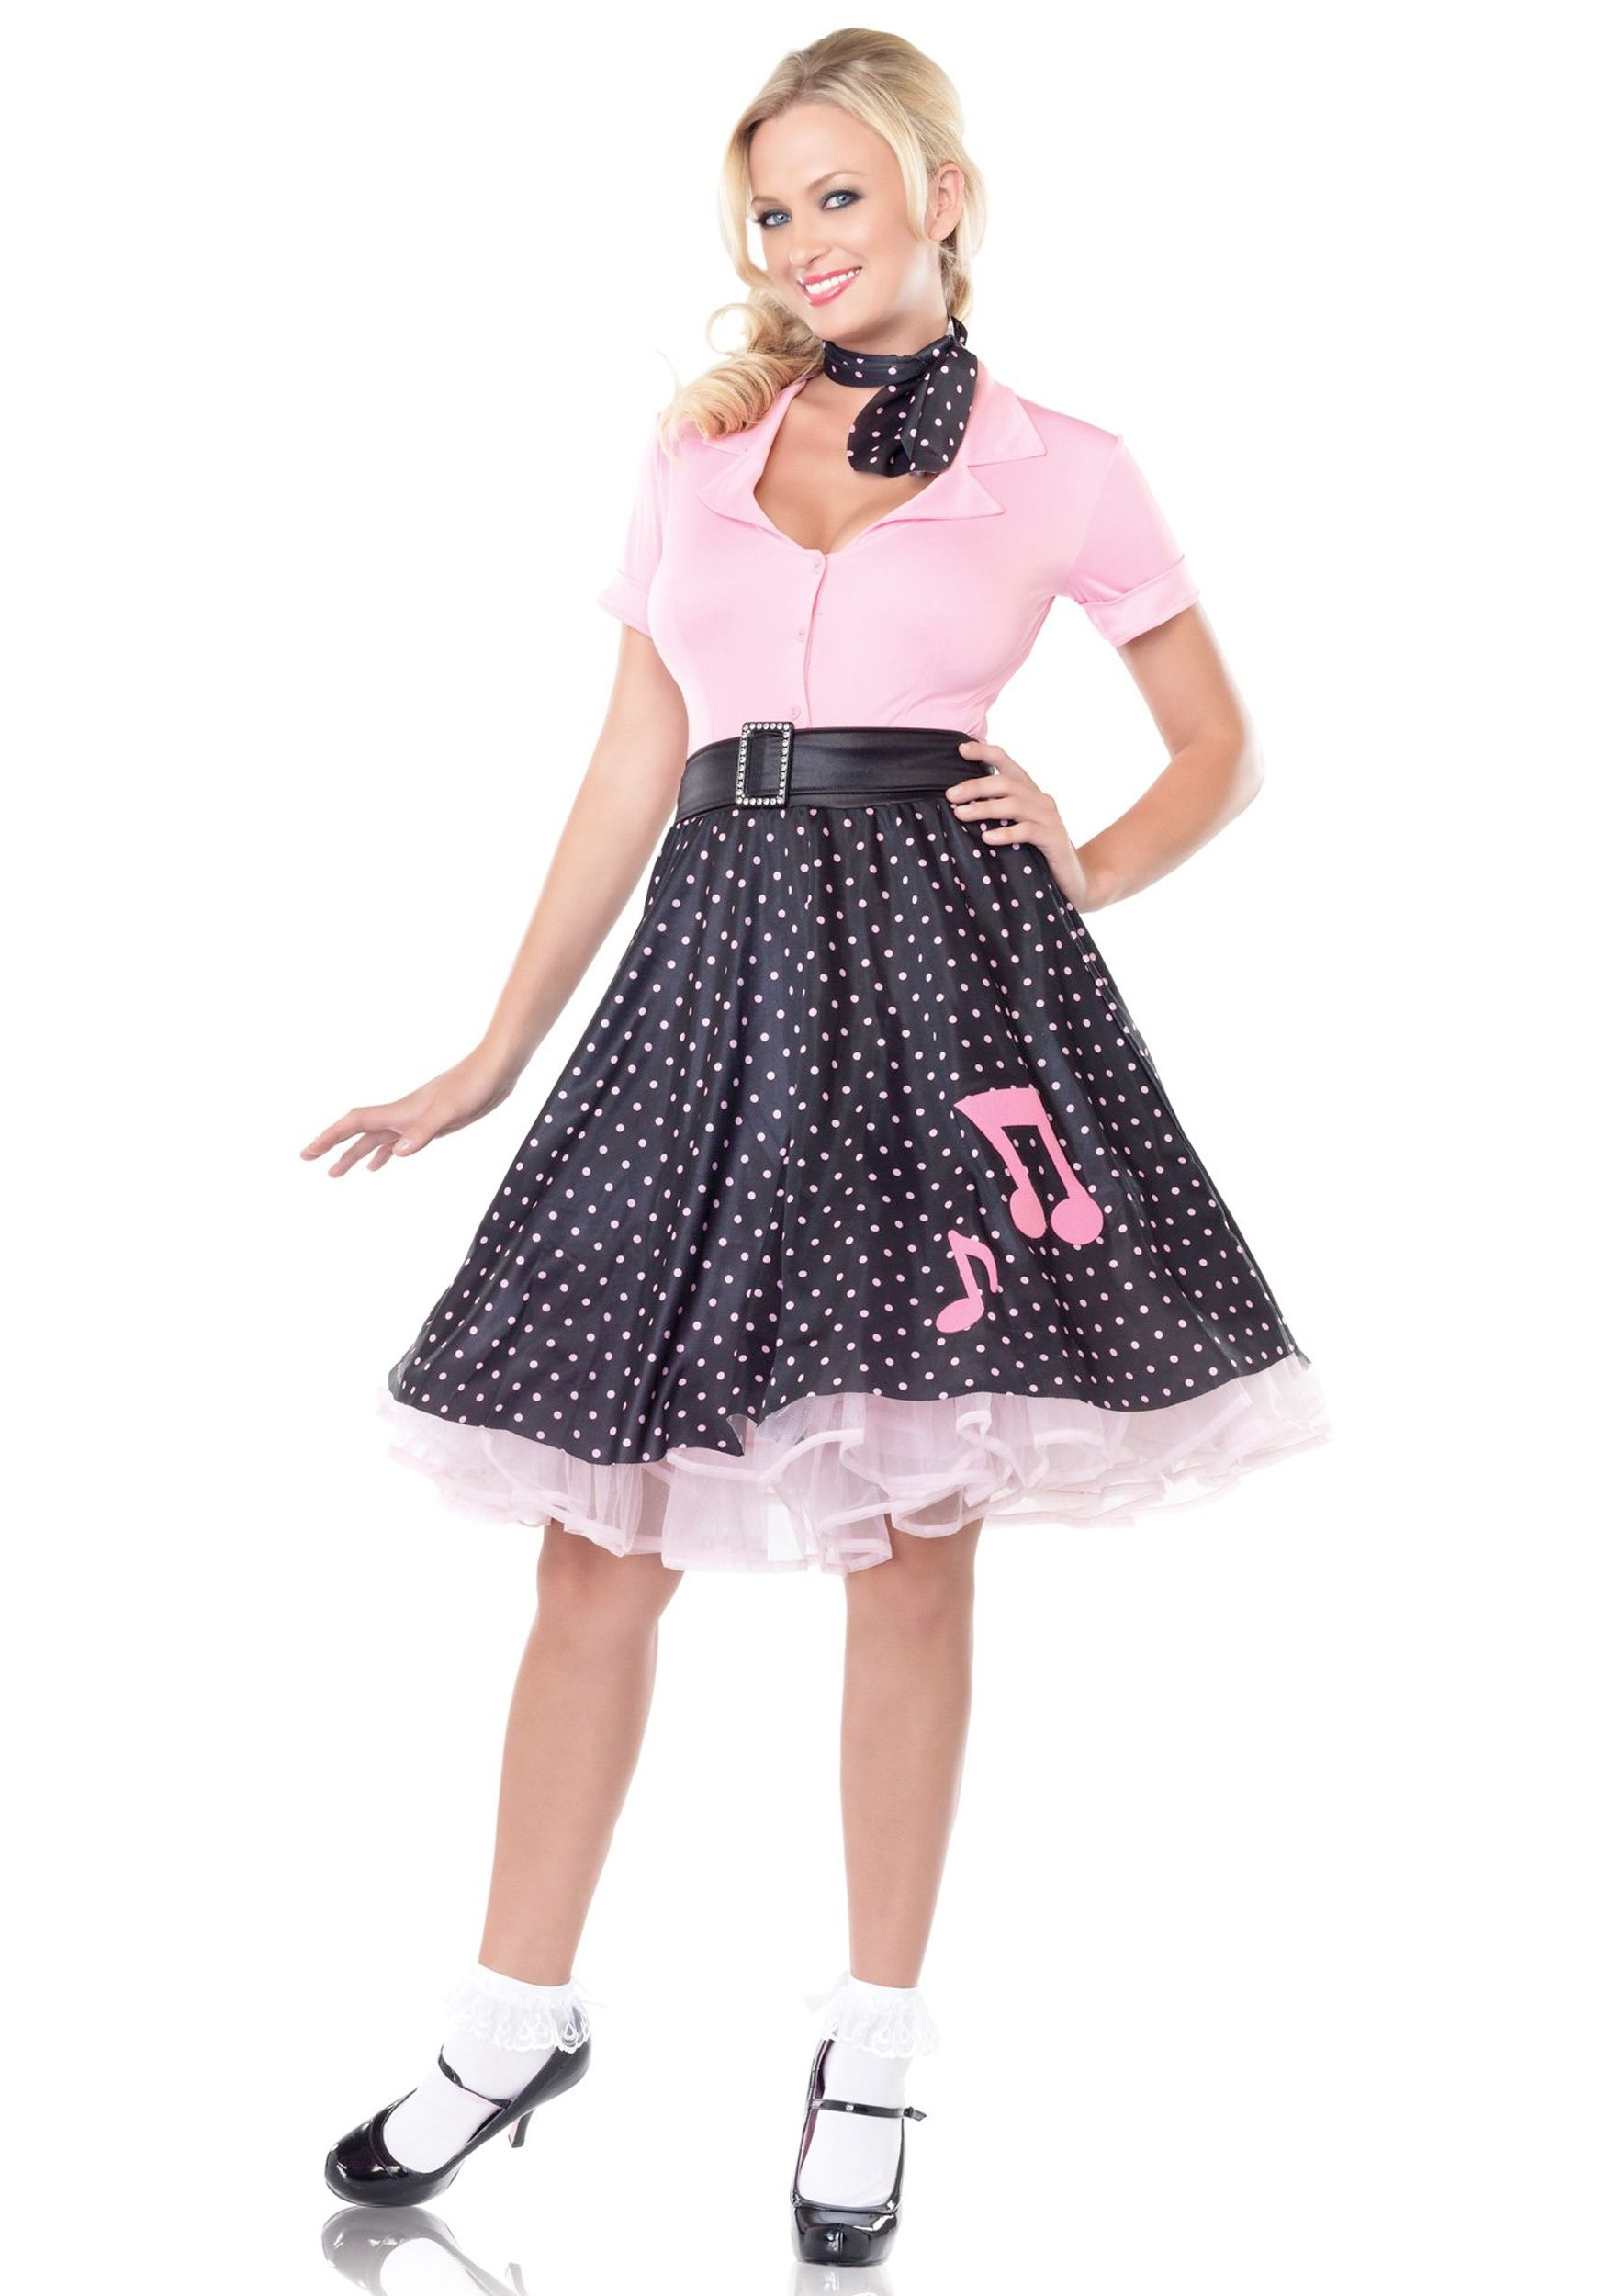 Adult Sock Hop Costumes for Women costume i would wear this any day ...